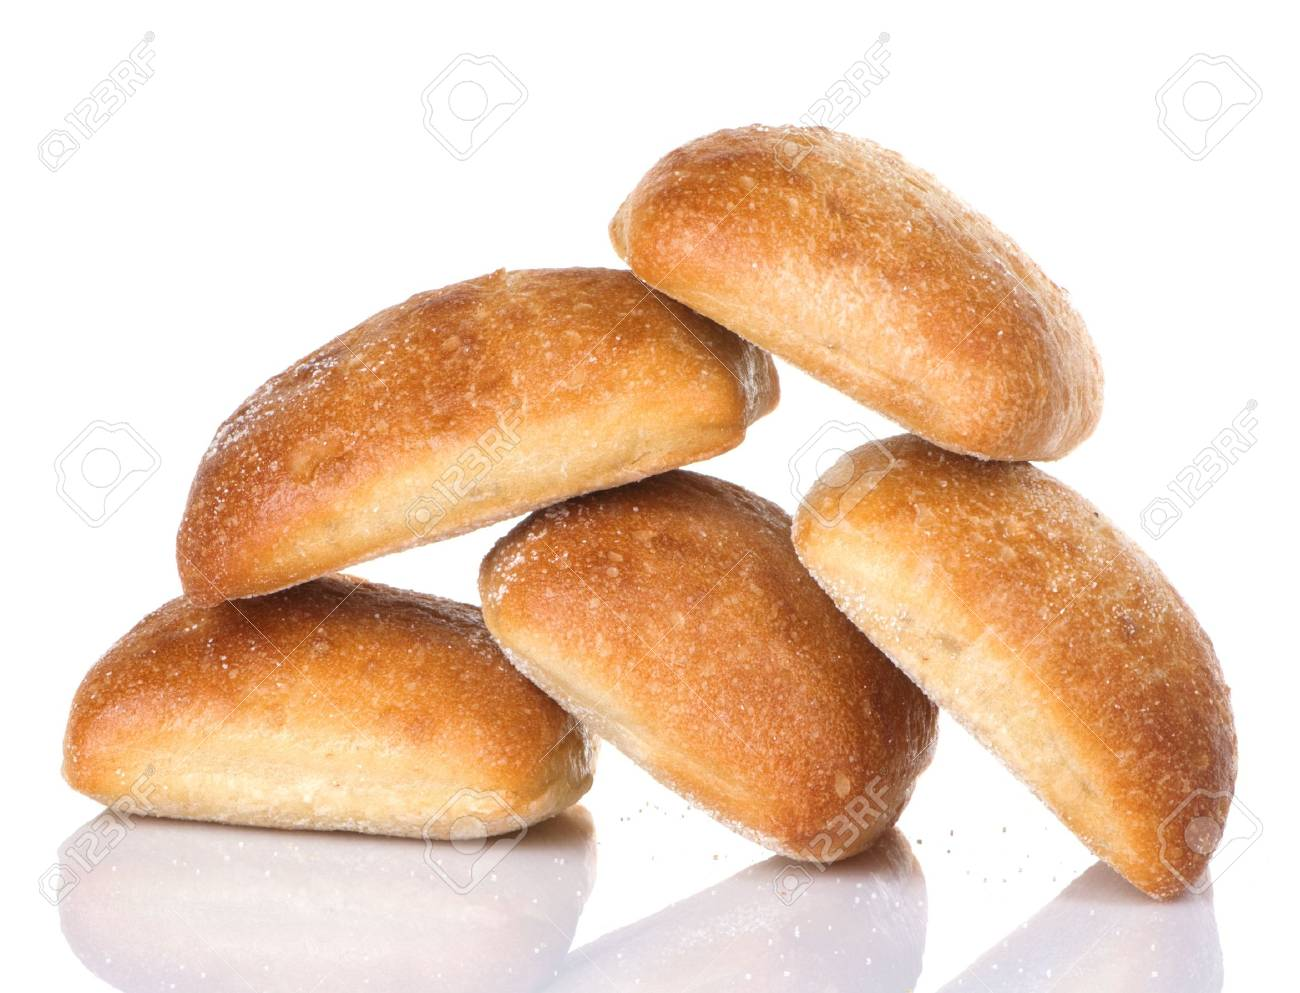 Five golden brown Italian Ciabatta Rolls Stock Photo - 5954756